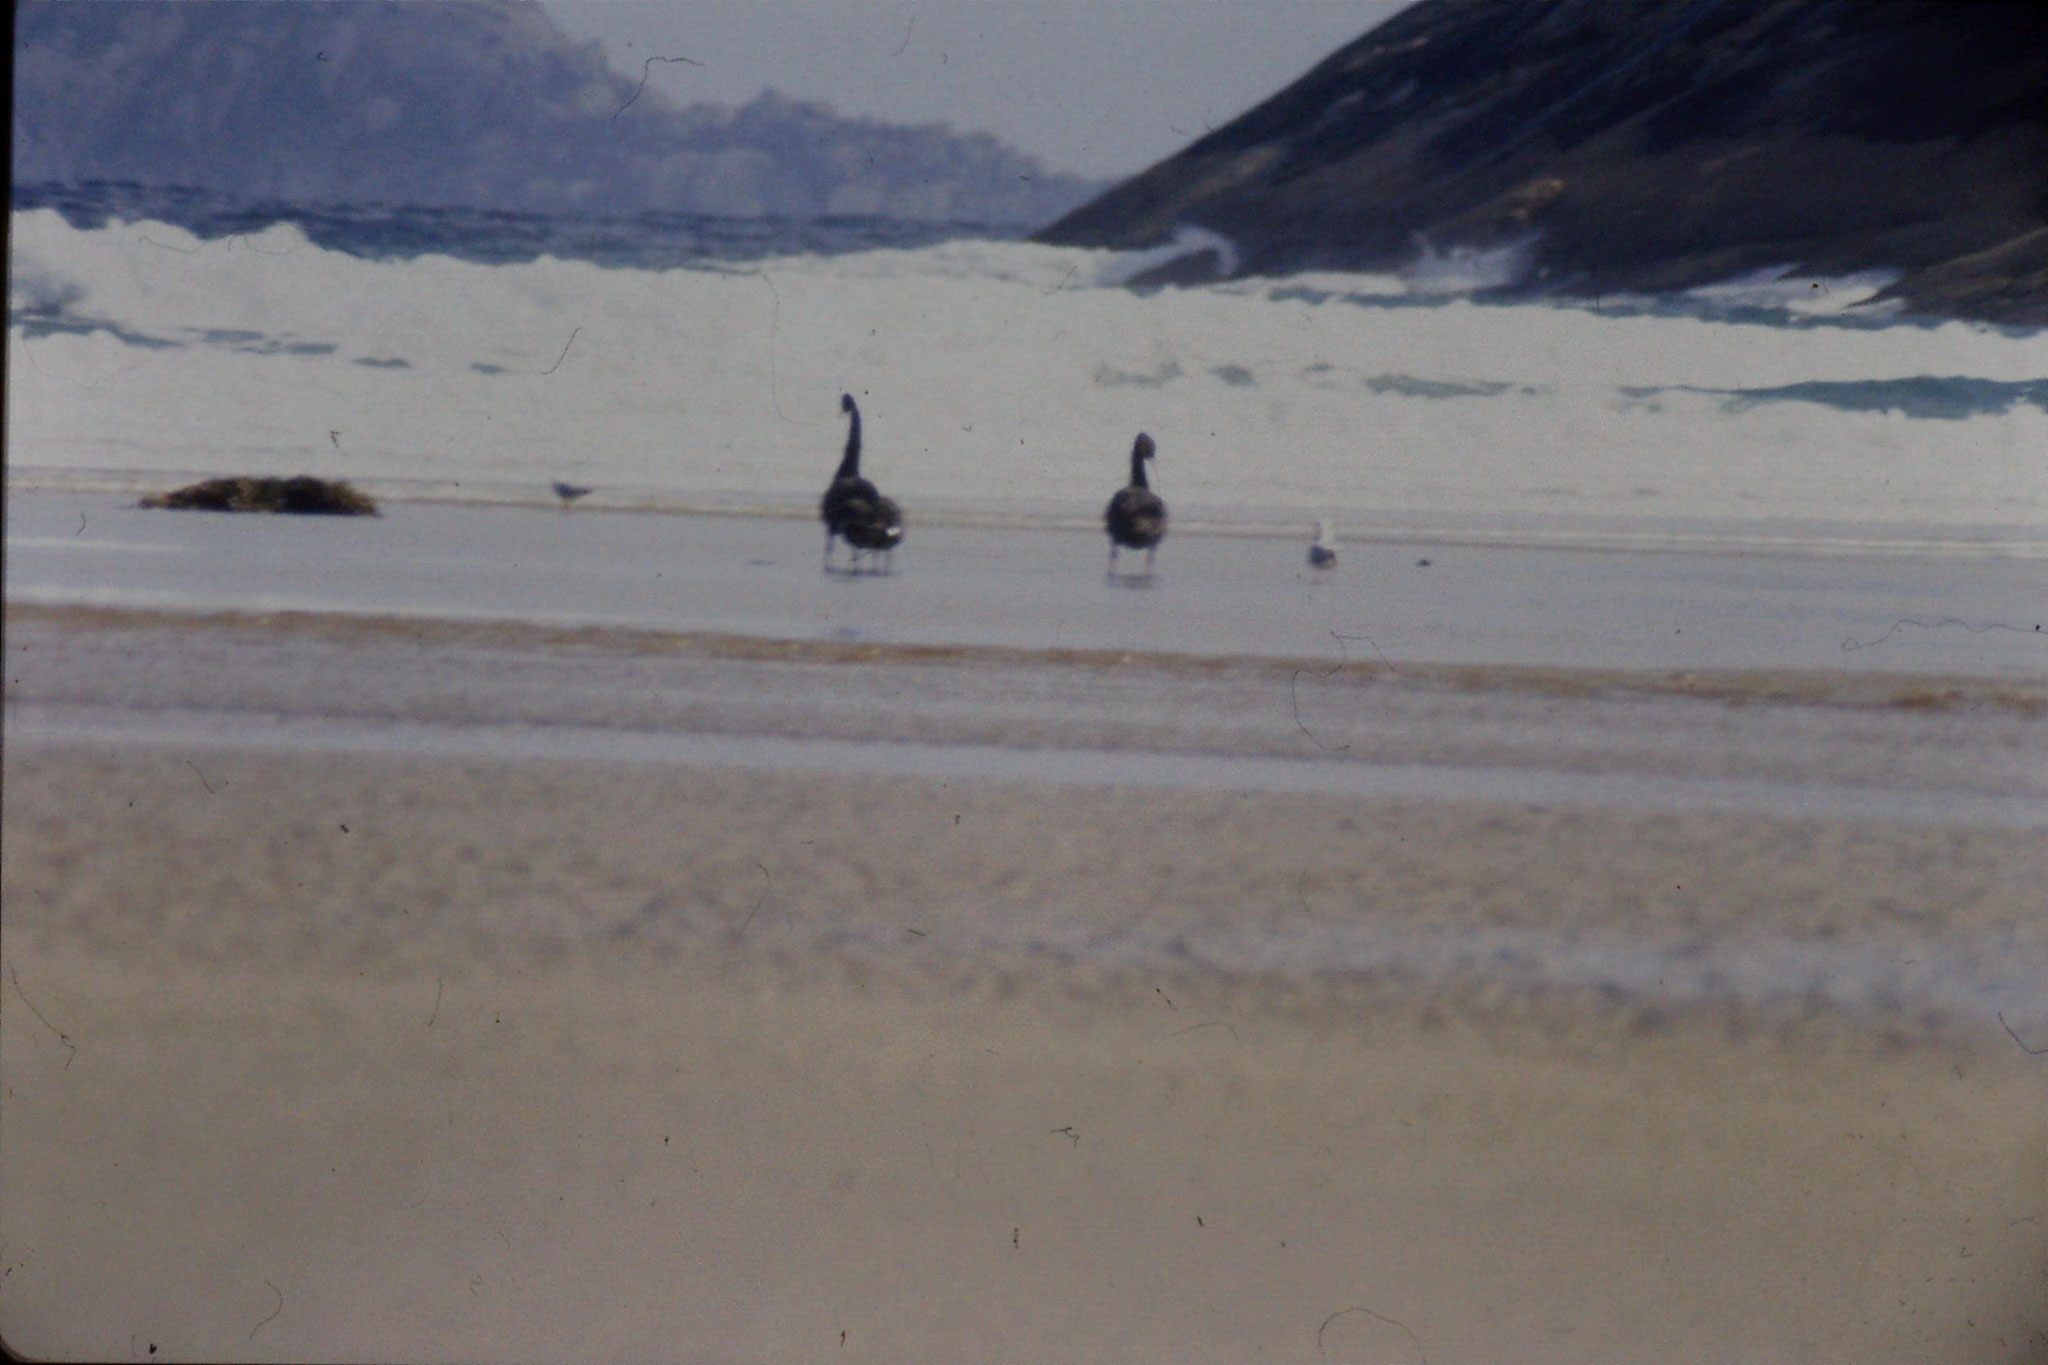 2/10/1990: 7:Wilson's Promontory, black swans at Norman Bay